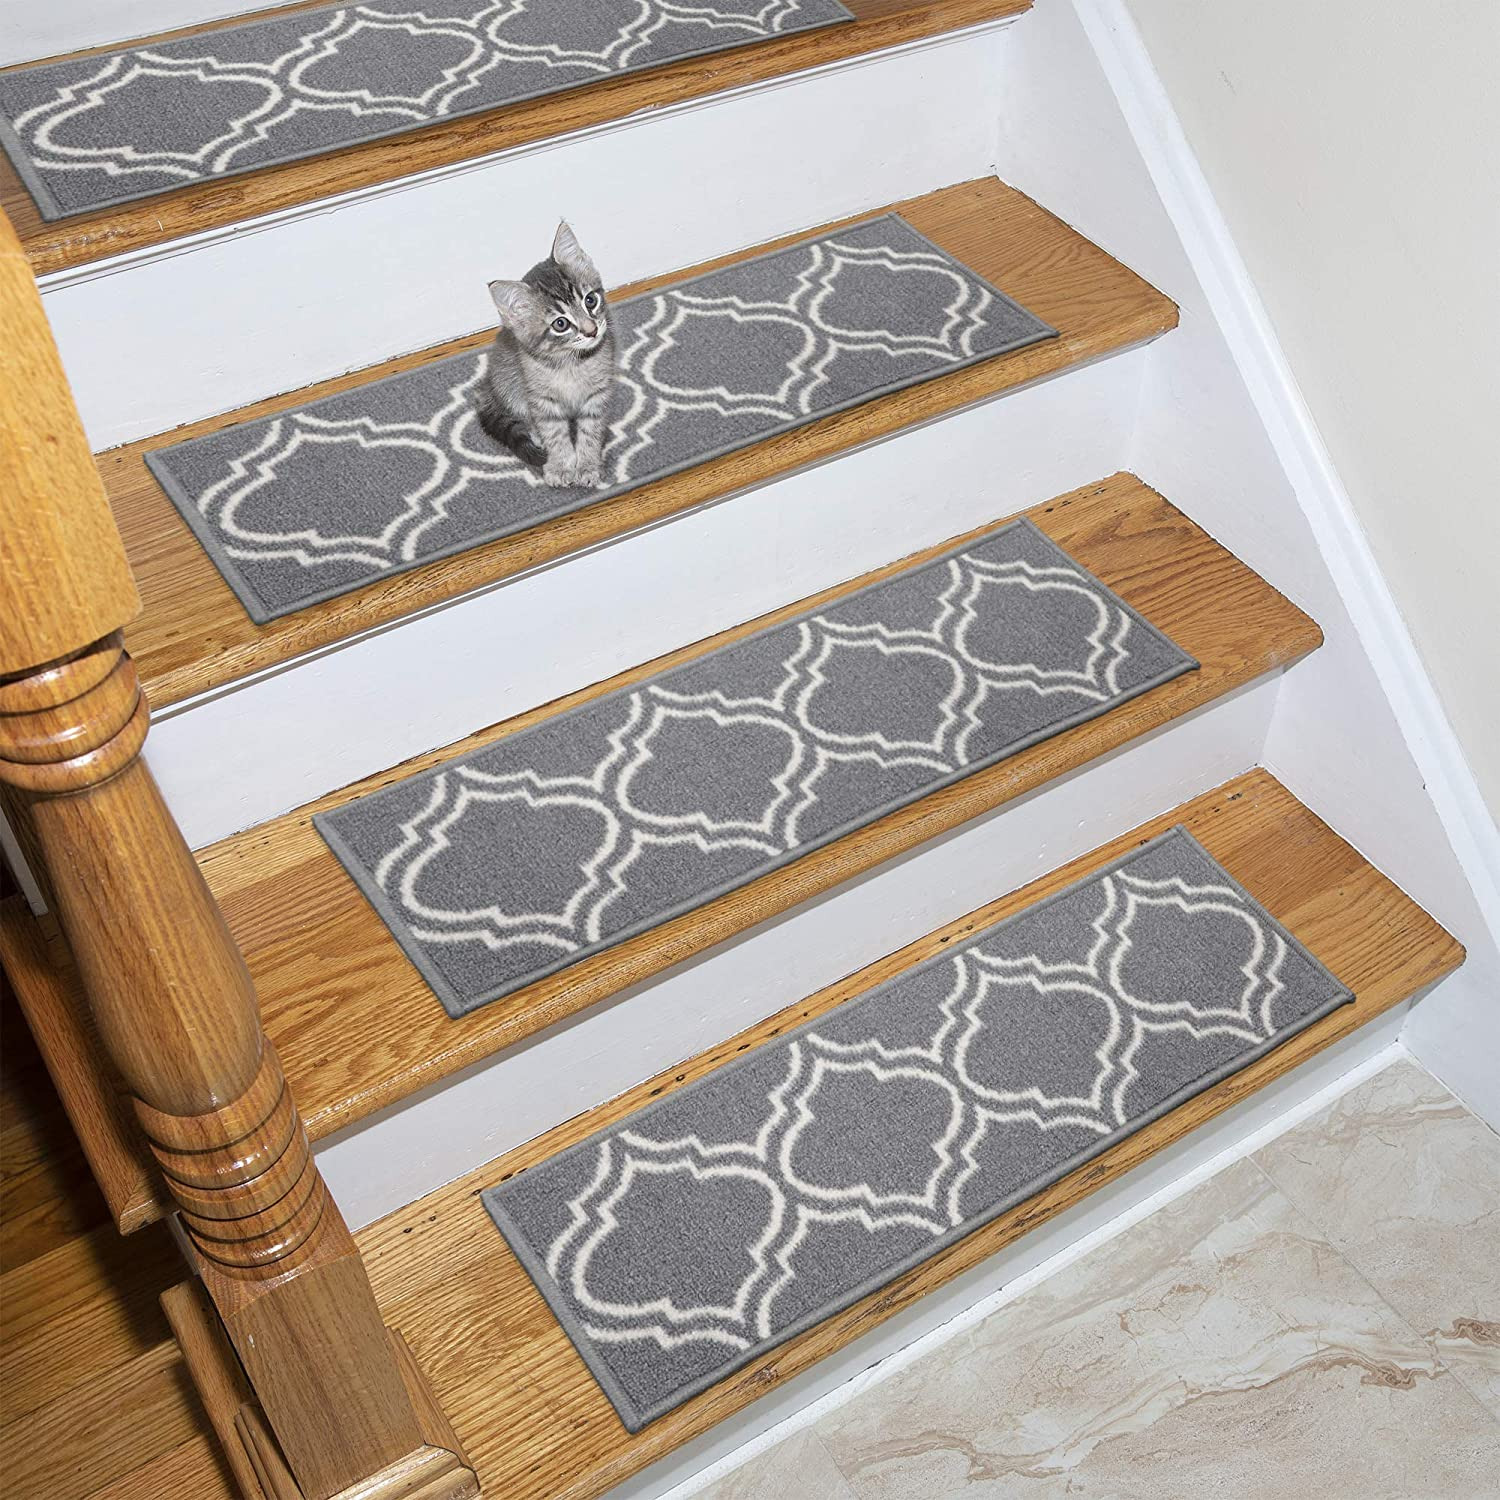 Ottomanson OTH3053-7 Ottohome Collection Stair Tread, 8.5 X 26 Pack of 7, Gray Moroccan Trellis